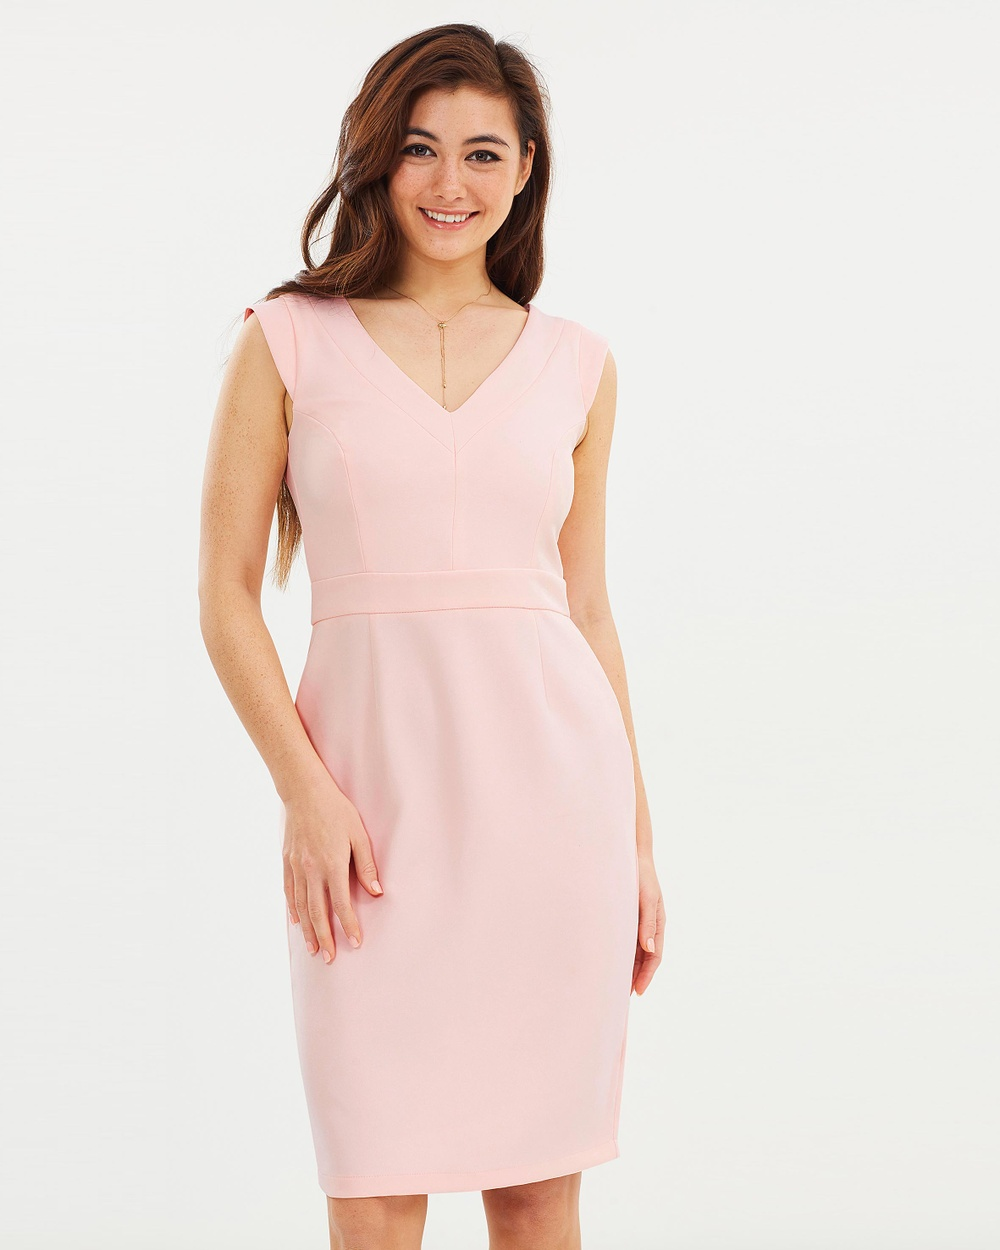 Dorothy Perkins V Neck Pencil Dress Dresses Pink V-Neck Pencil Dress